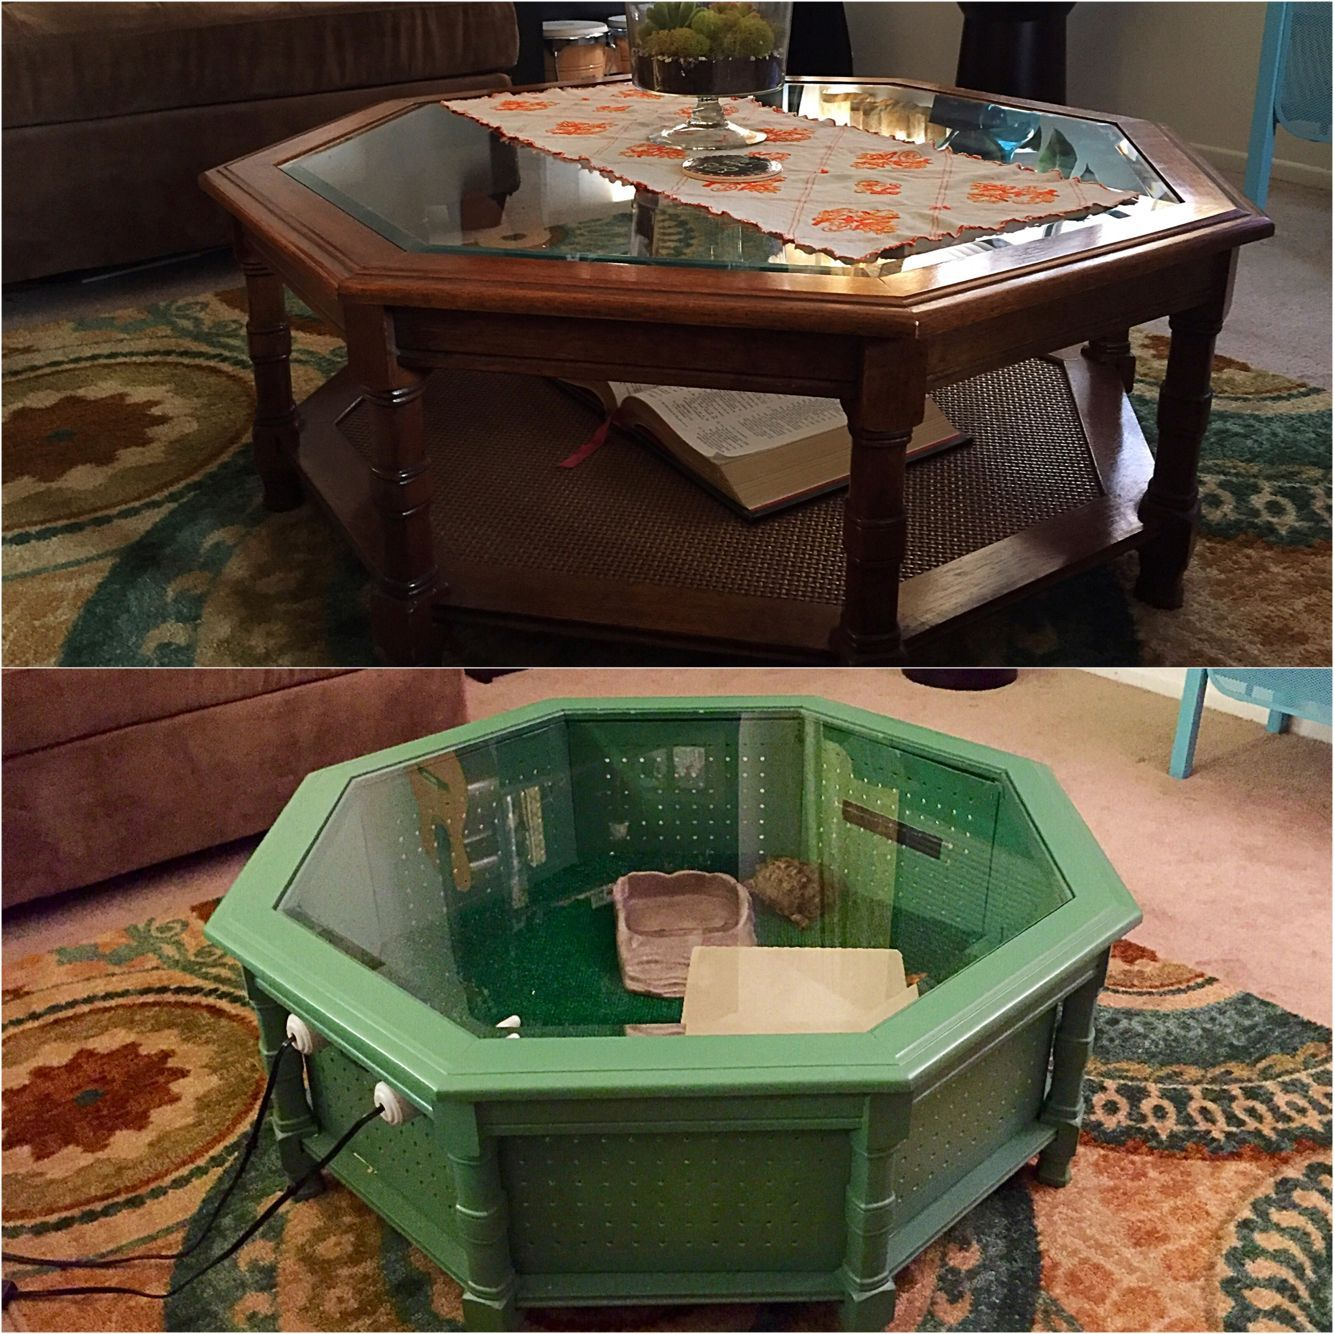 Pet Turtle ♥ DIY Tortoise Habit. Recycled Coffee Table Into A One Of A Kind  Tortoise Home. #familyproject